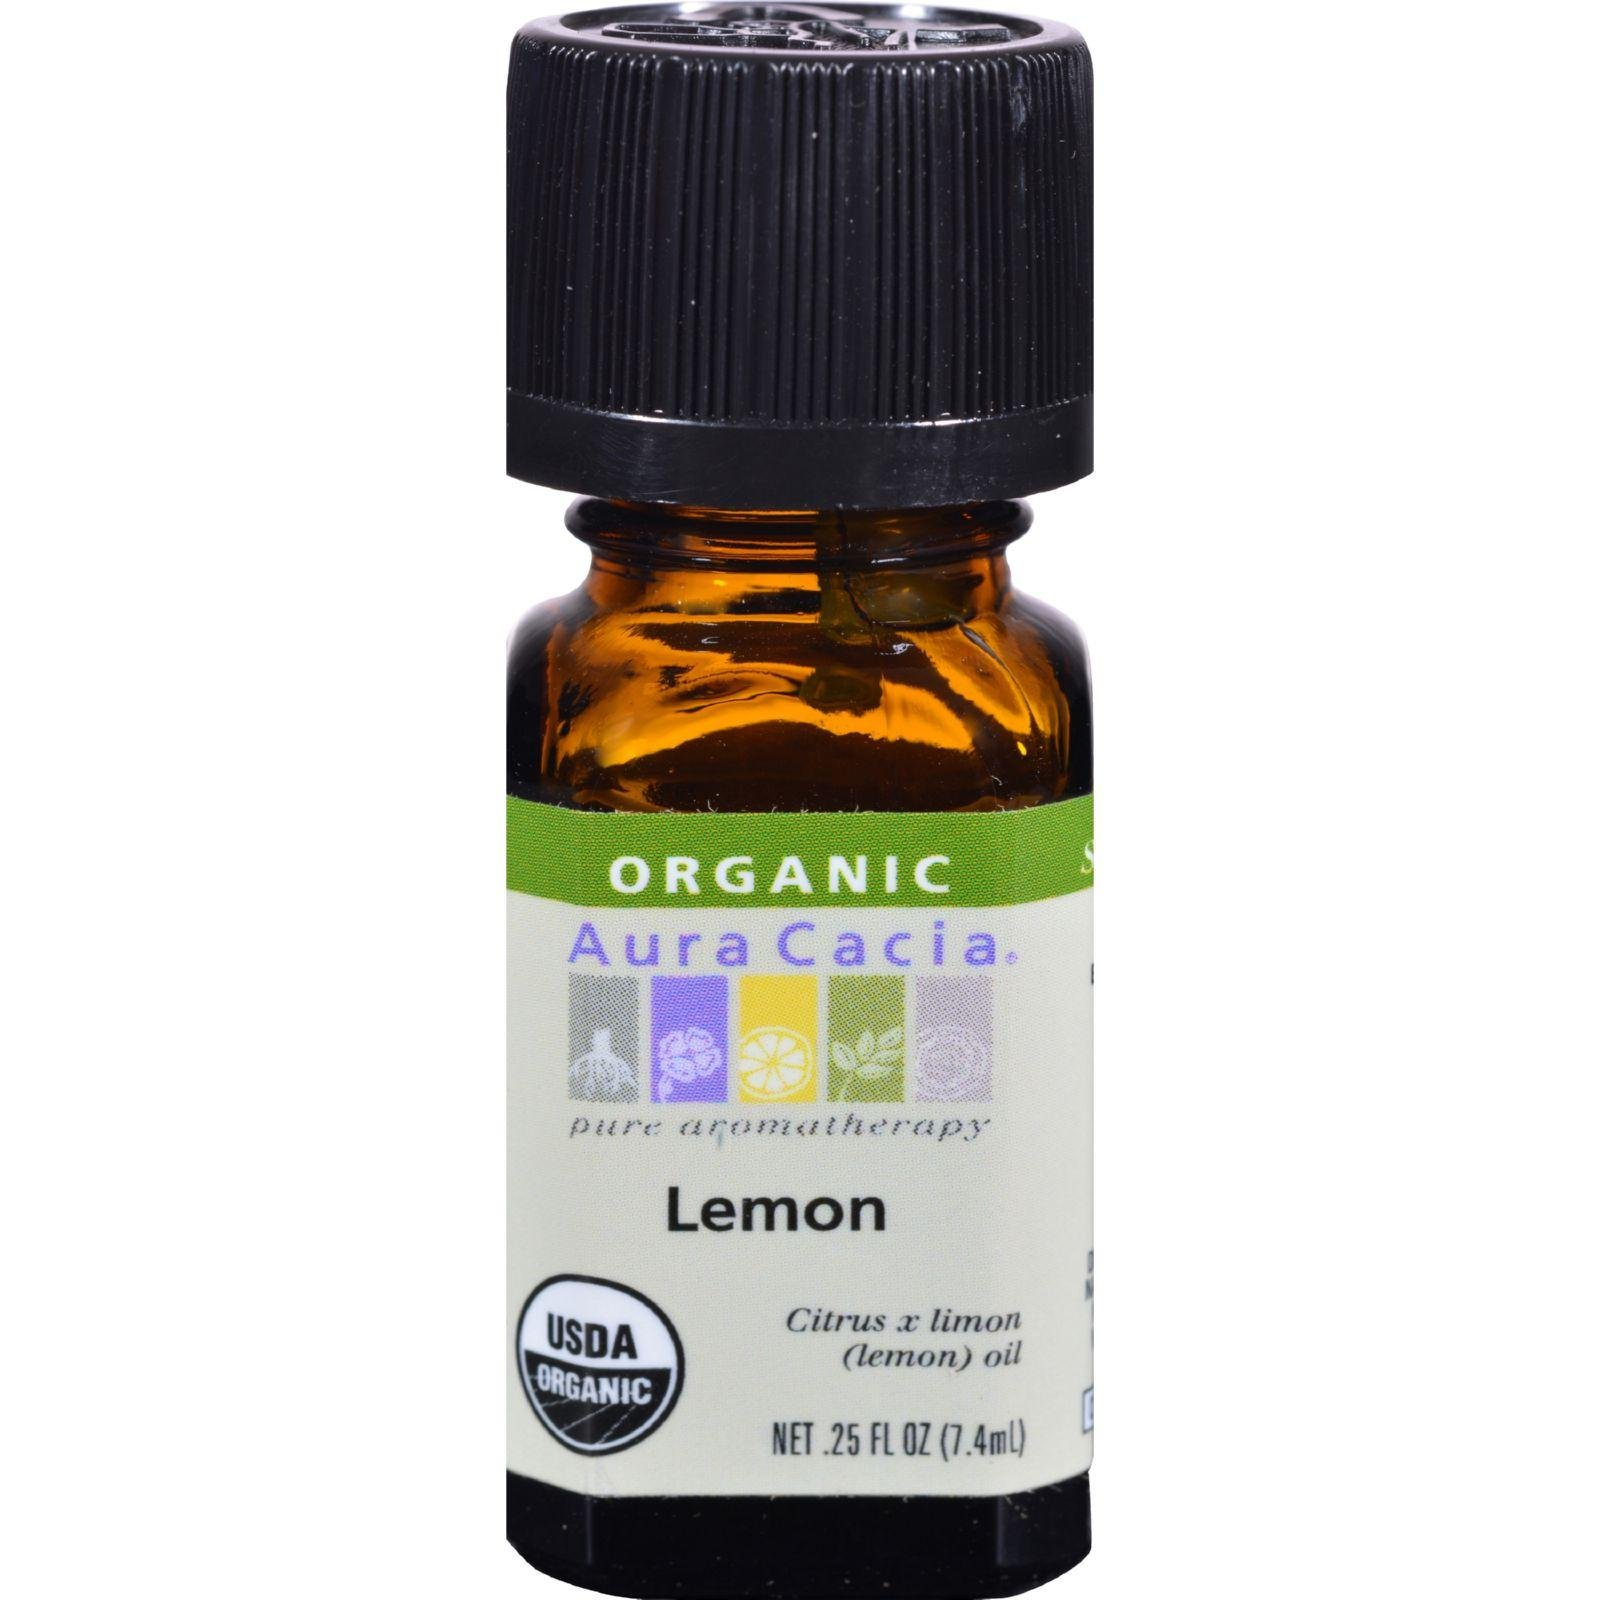 Aura Cacia Organic Lemon .25 fl oz (7.4 ml) Liquid